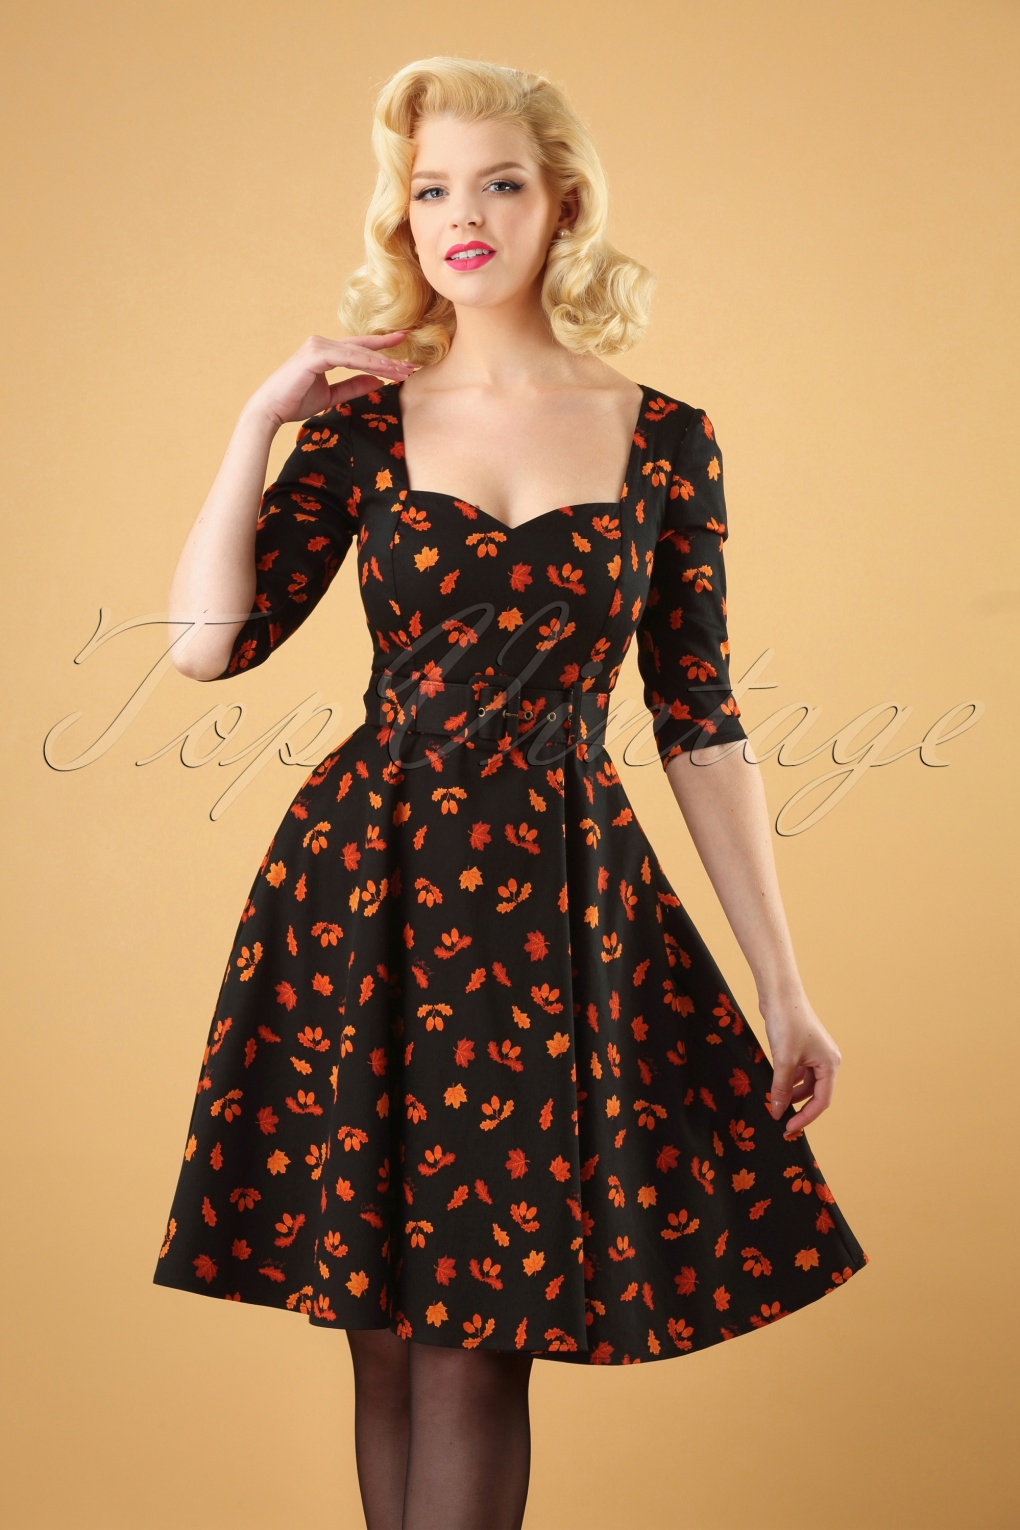 1940s Dresses | 40s Dress, Swing Dress 50s Eliana Acorn Swing Dress in Black £35.82 AT vintagedancer.com